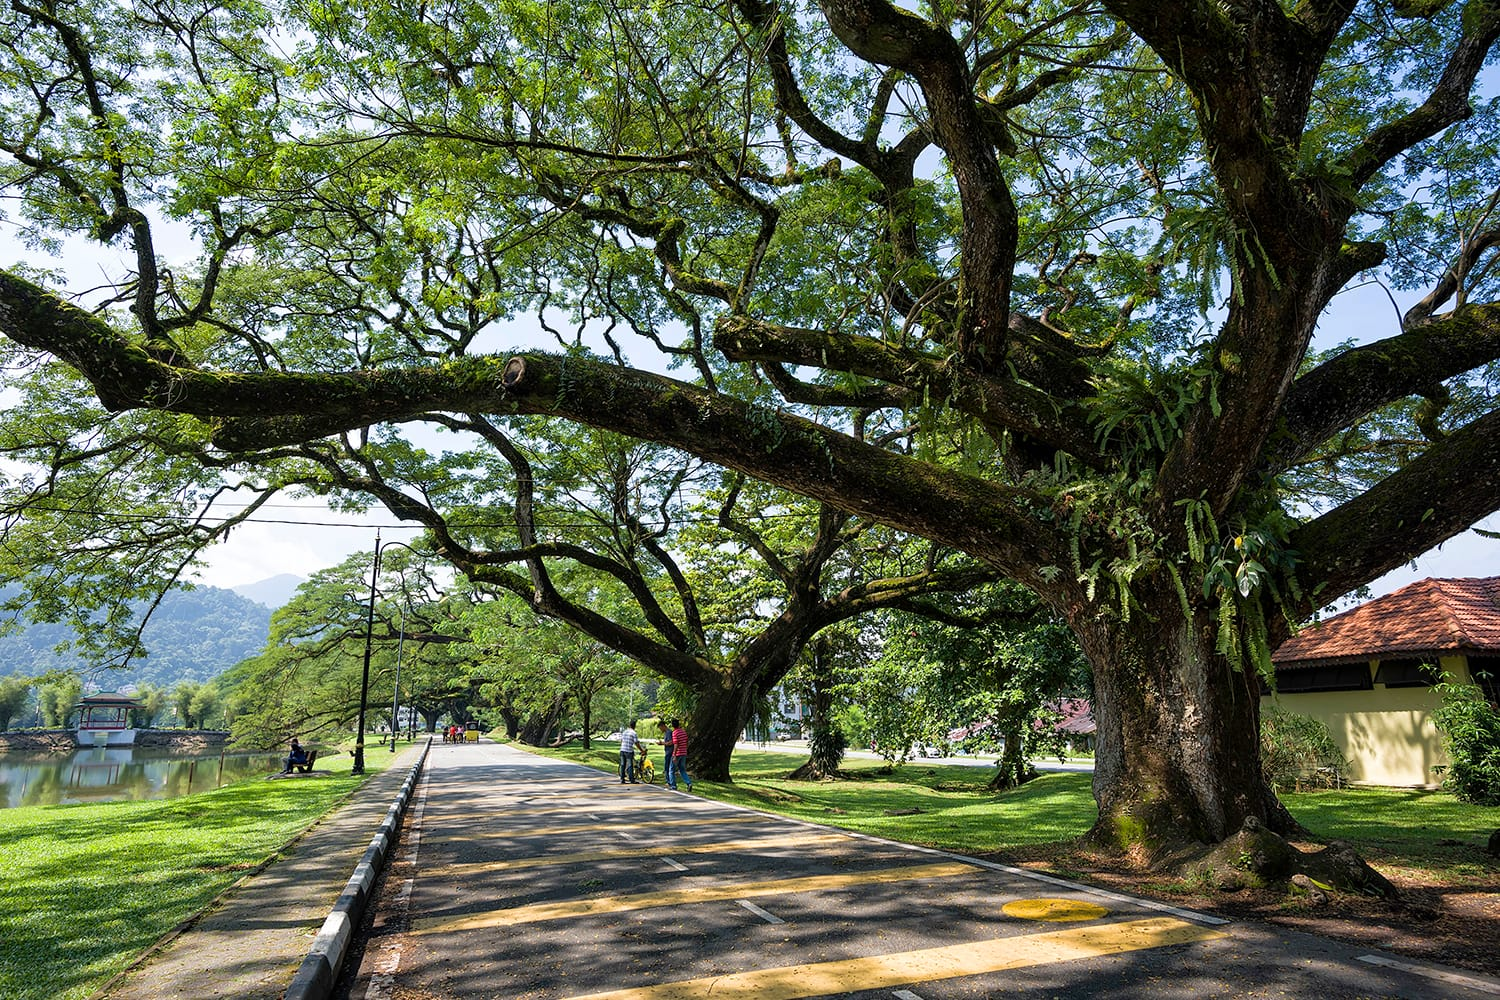 Old birch tree with long branches along Taiping Lake Garden, Taiping, Malaysia. It also known as Taman Tasik Taiping.